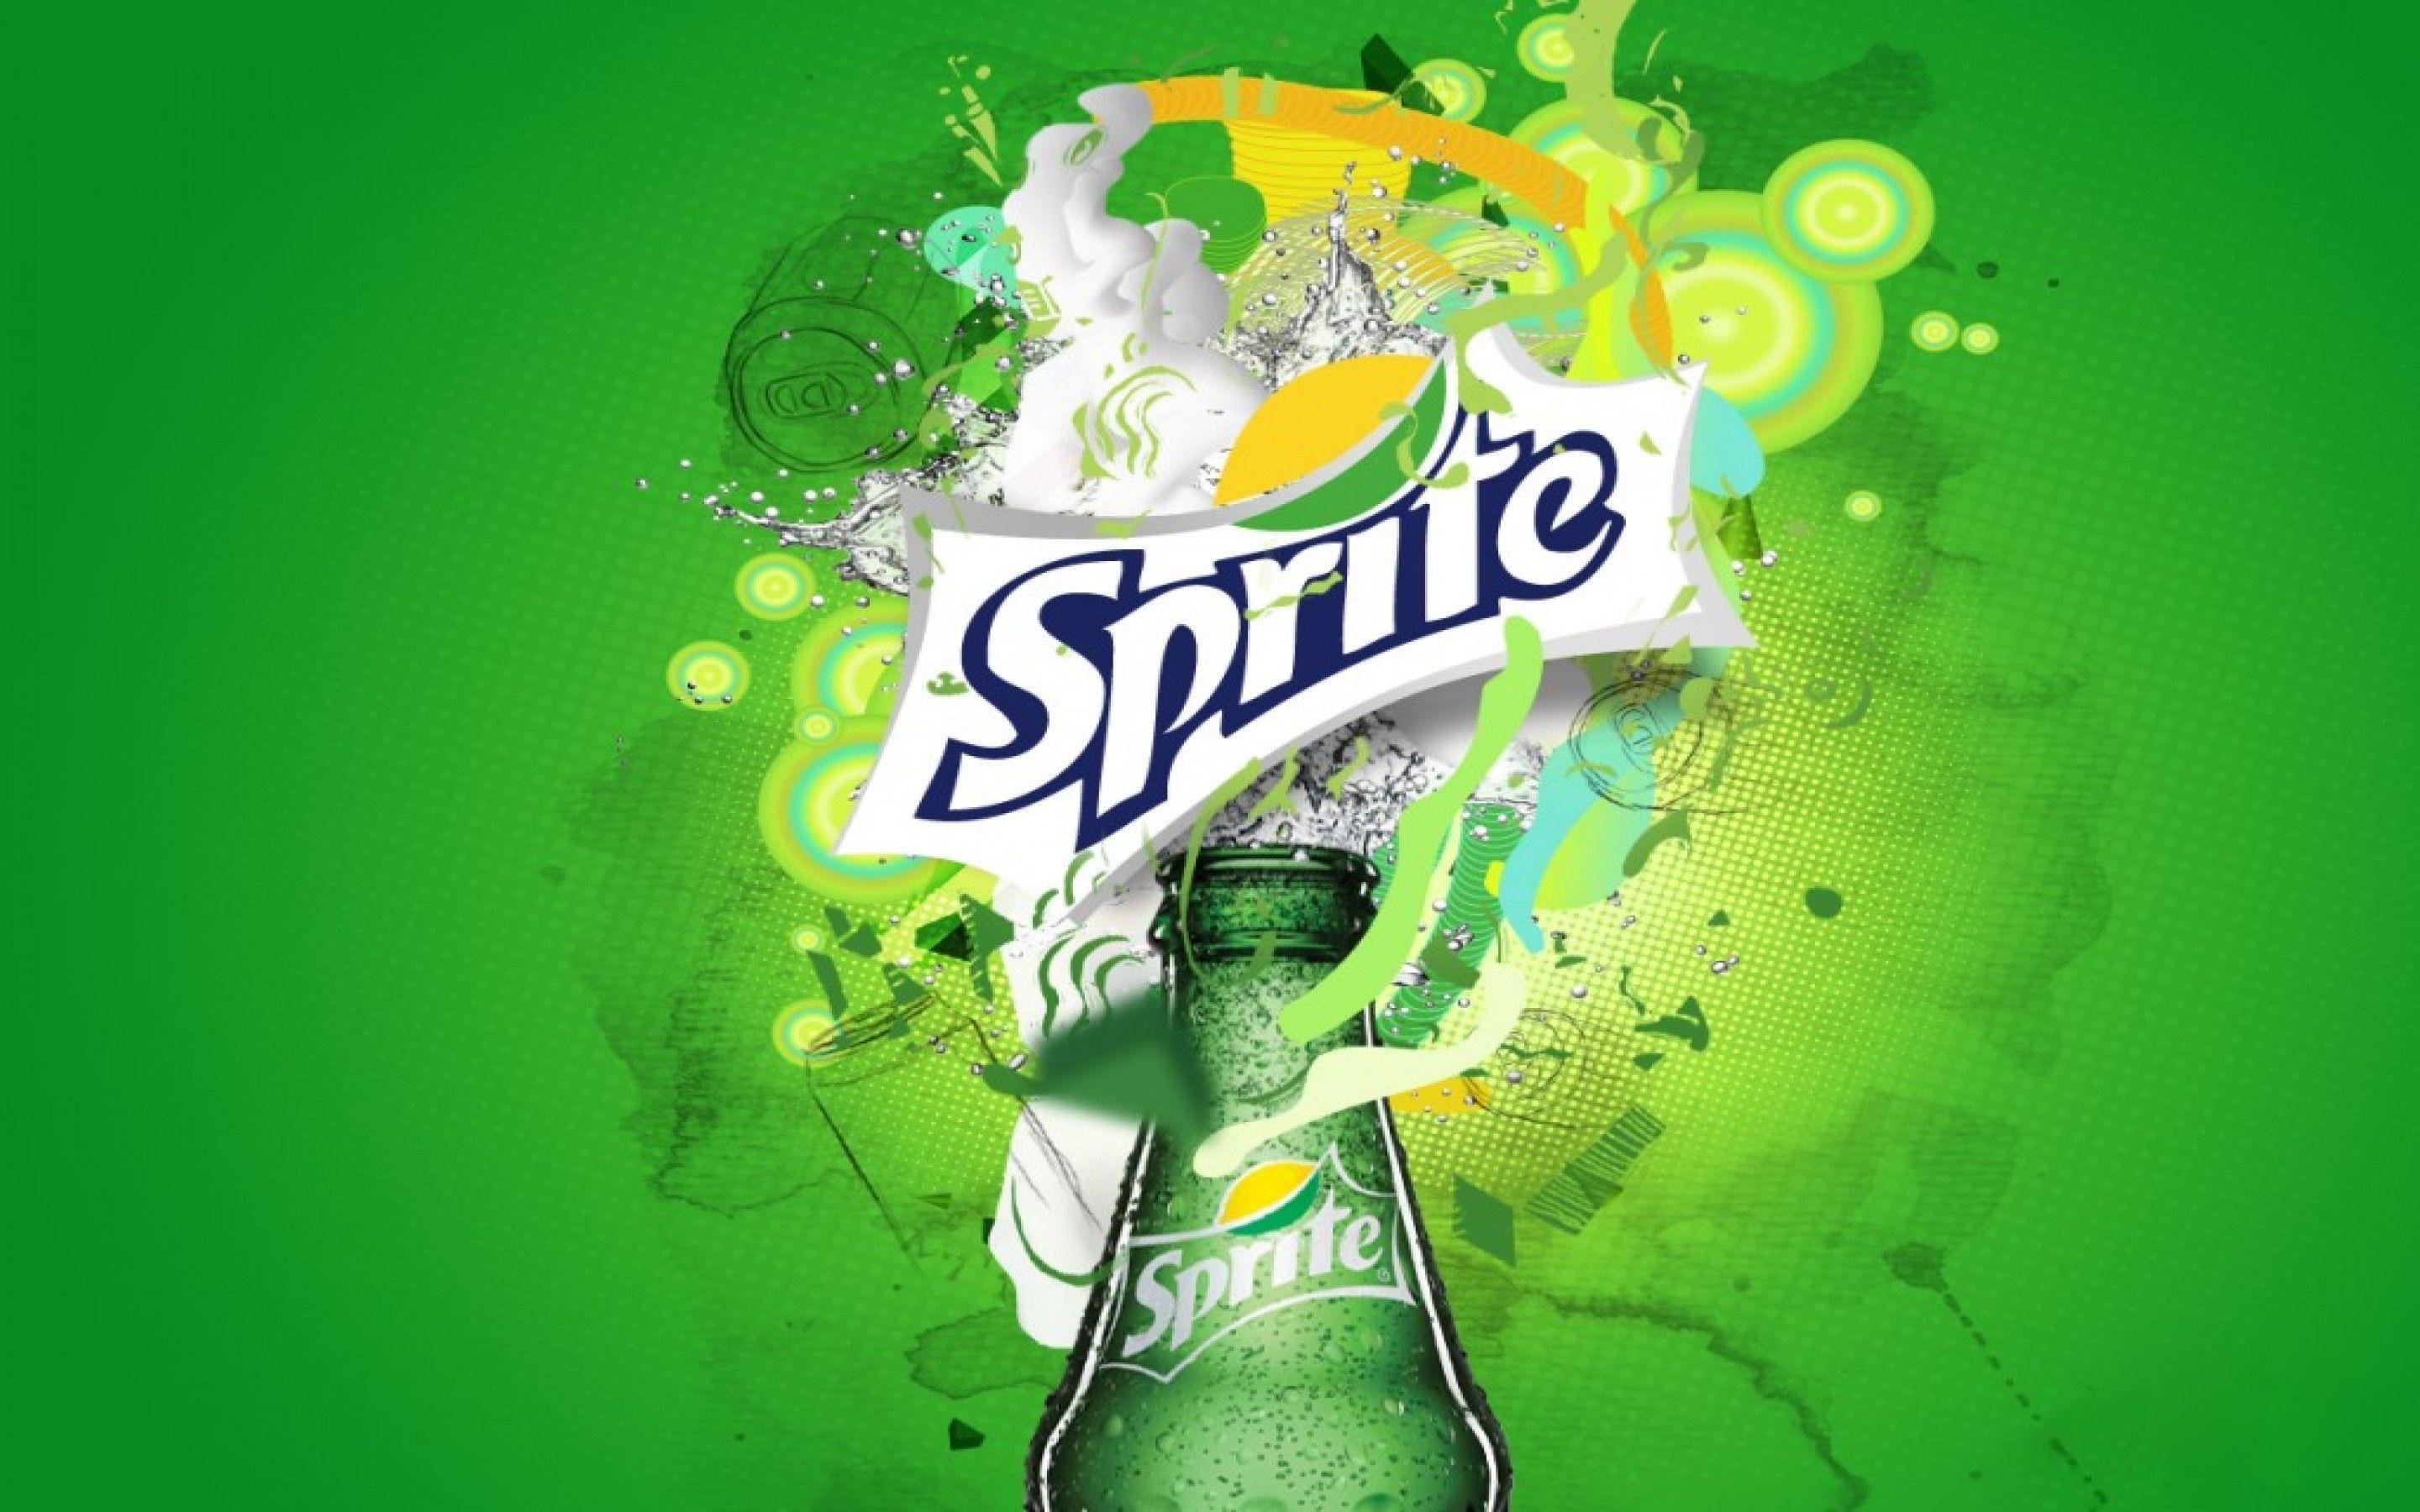 Future Dirty Sprite Wallpapers - Top Free Future Dirty Sprite ...